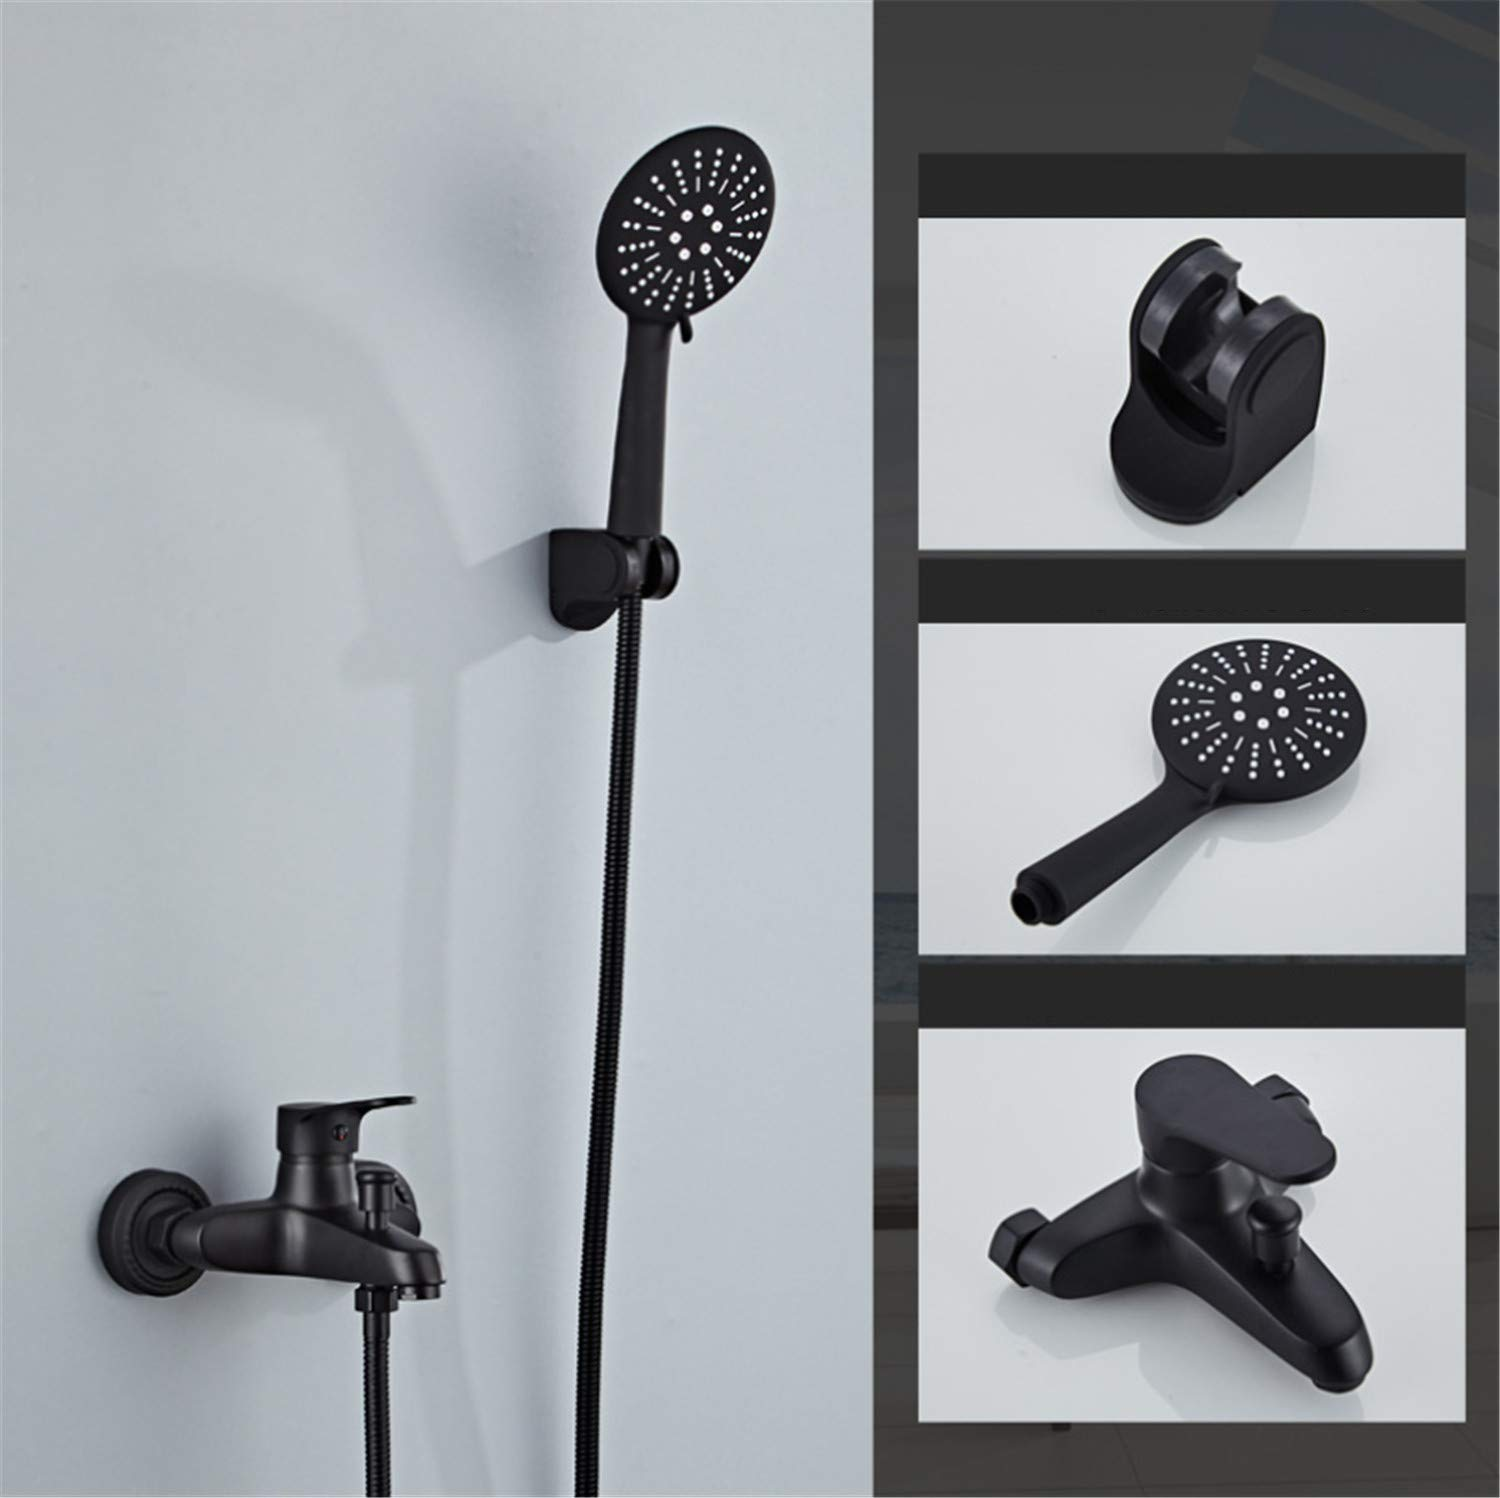 UNIQUE-F Simple Shower Black Multi-Function Top Spray Set Can Be Rotated ABS Thick Portable Hand-Selected Brass Body